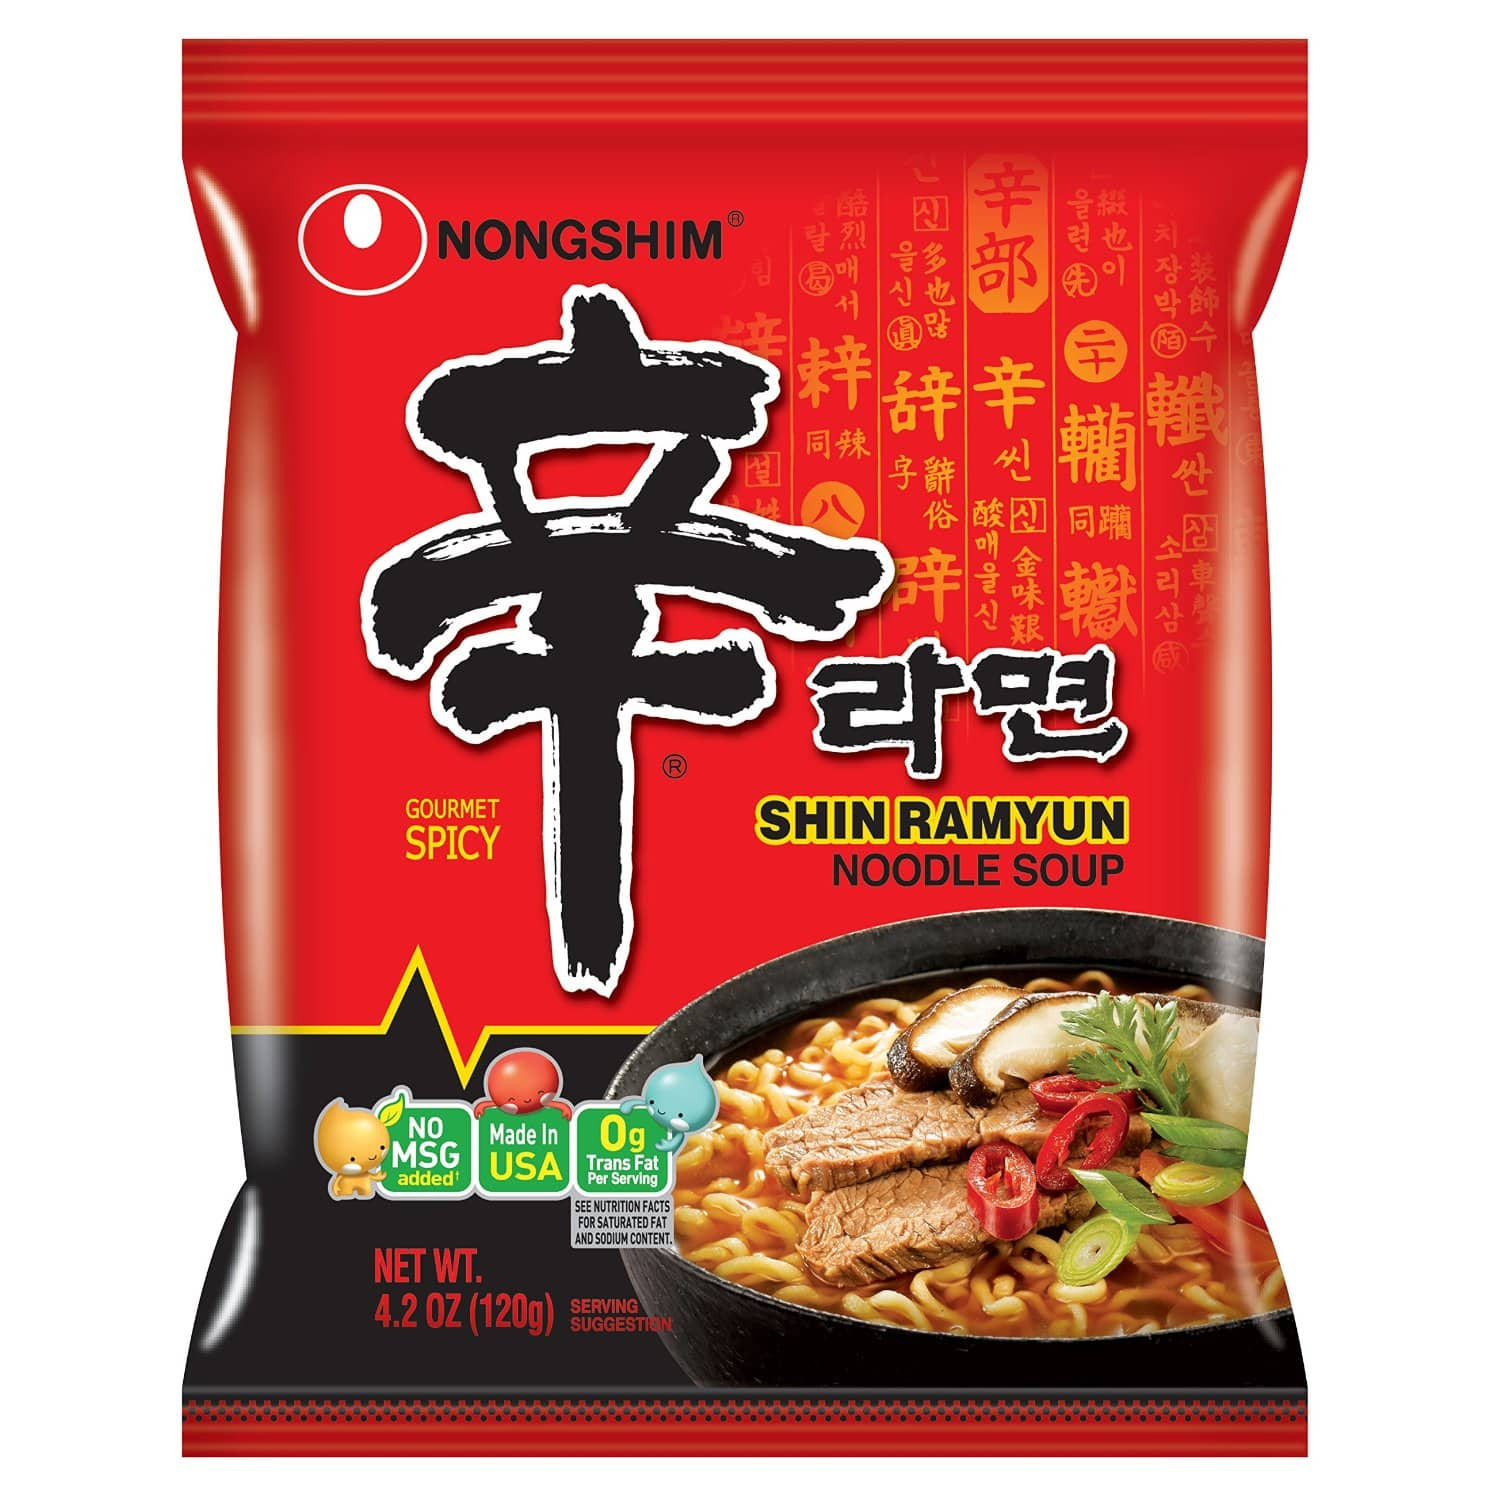 Nongshim Shin Ramyun Noodle Soup, Gourmet Spicy, 4.2 Ounce (Pack of 20) $13.60 w/ 15% s&s